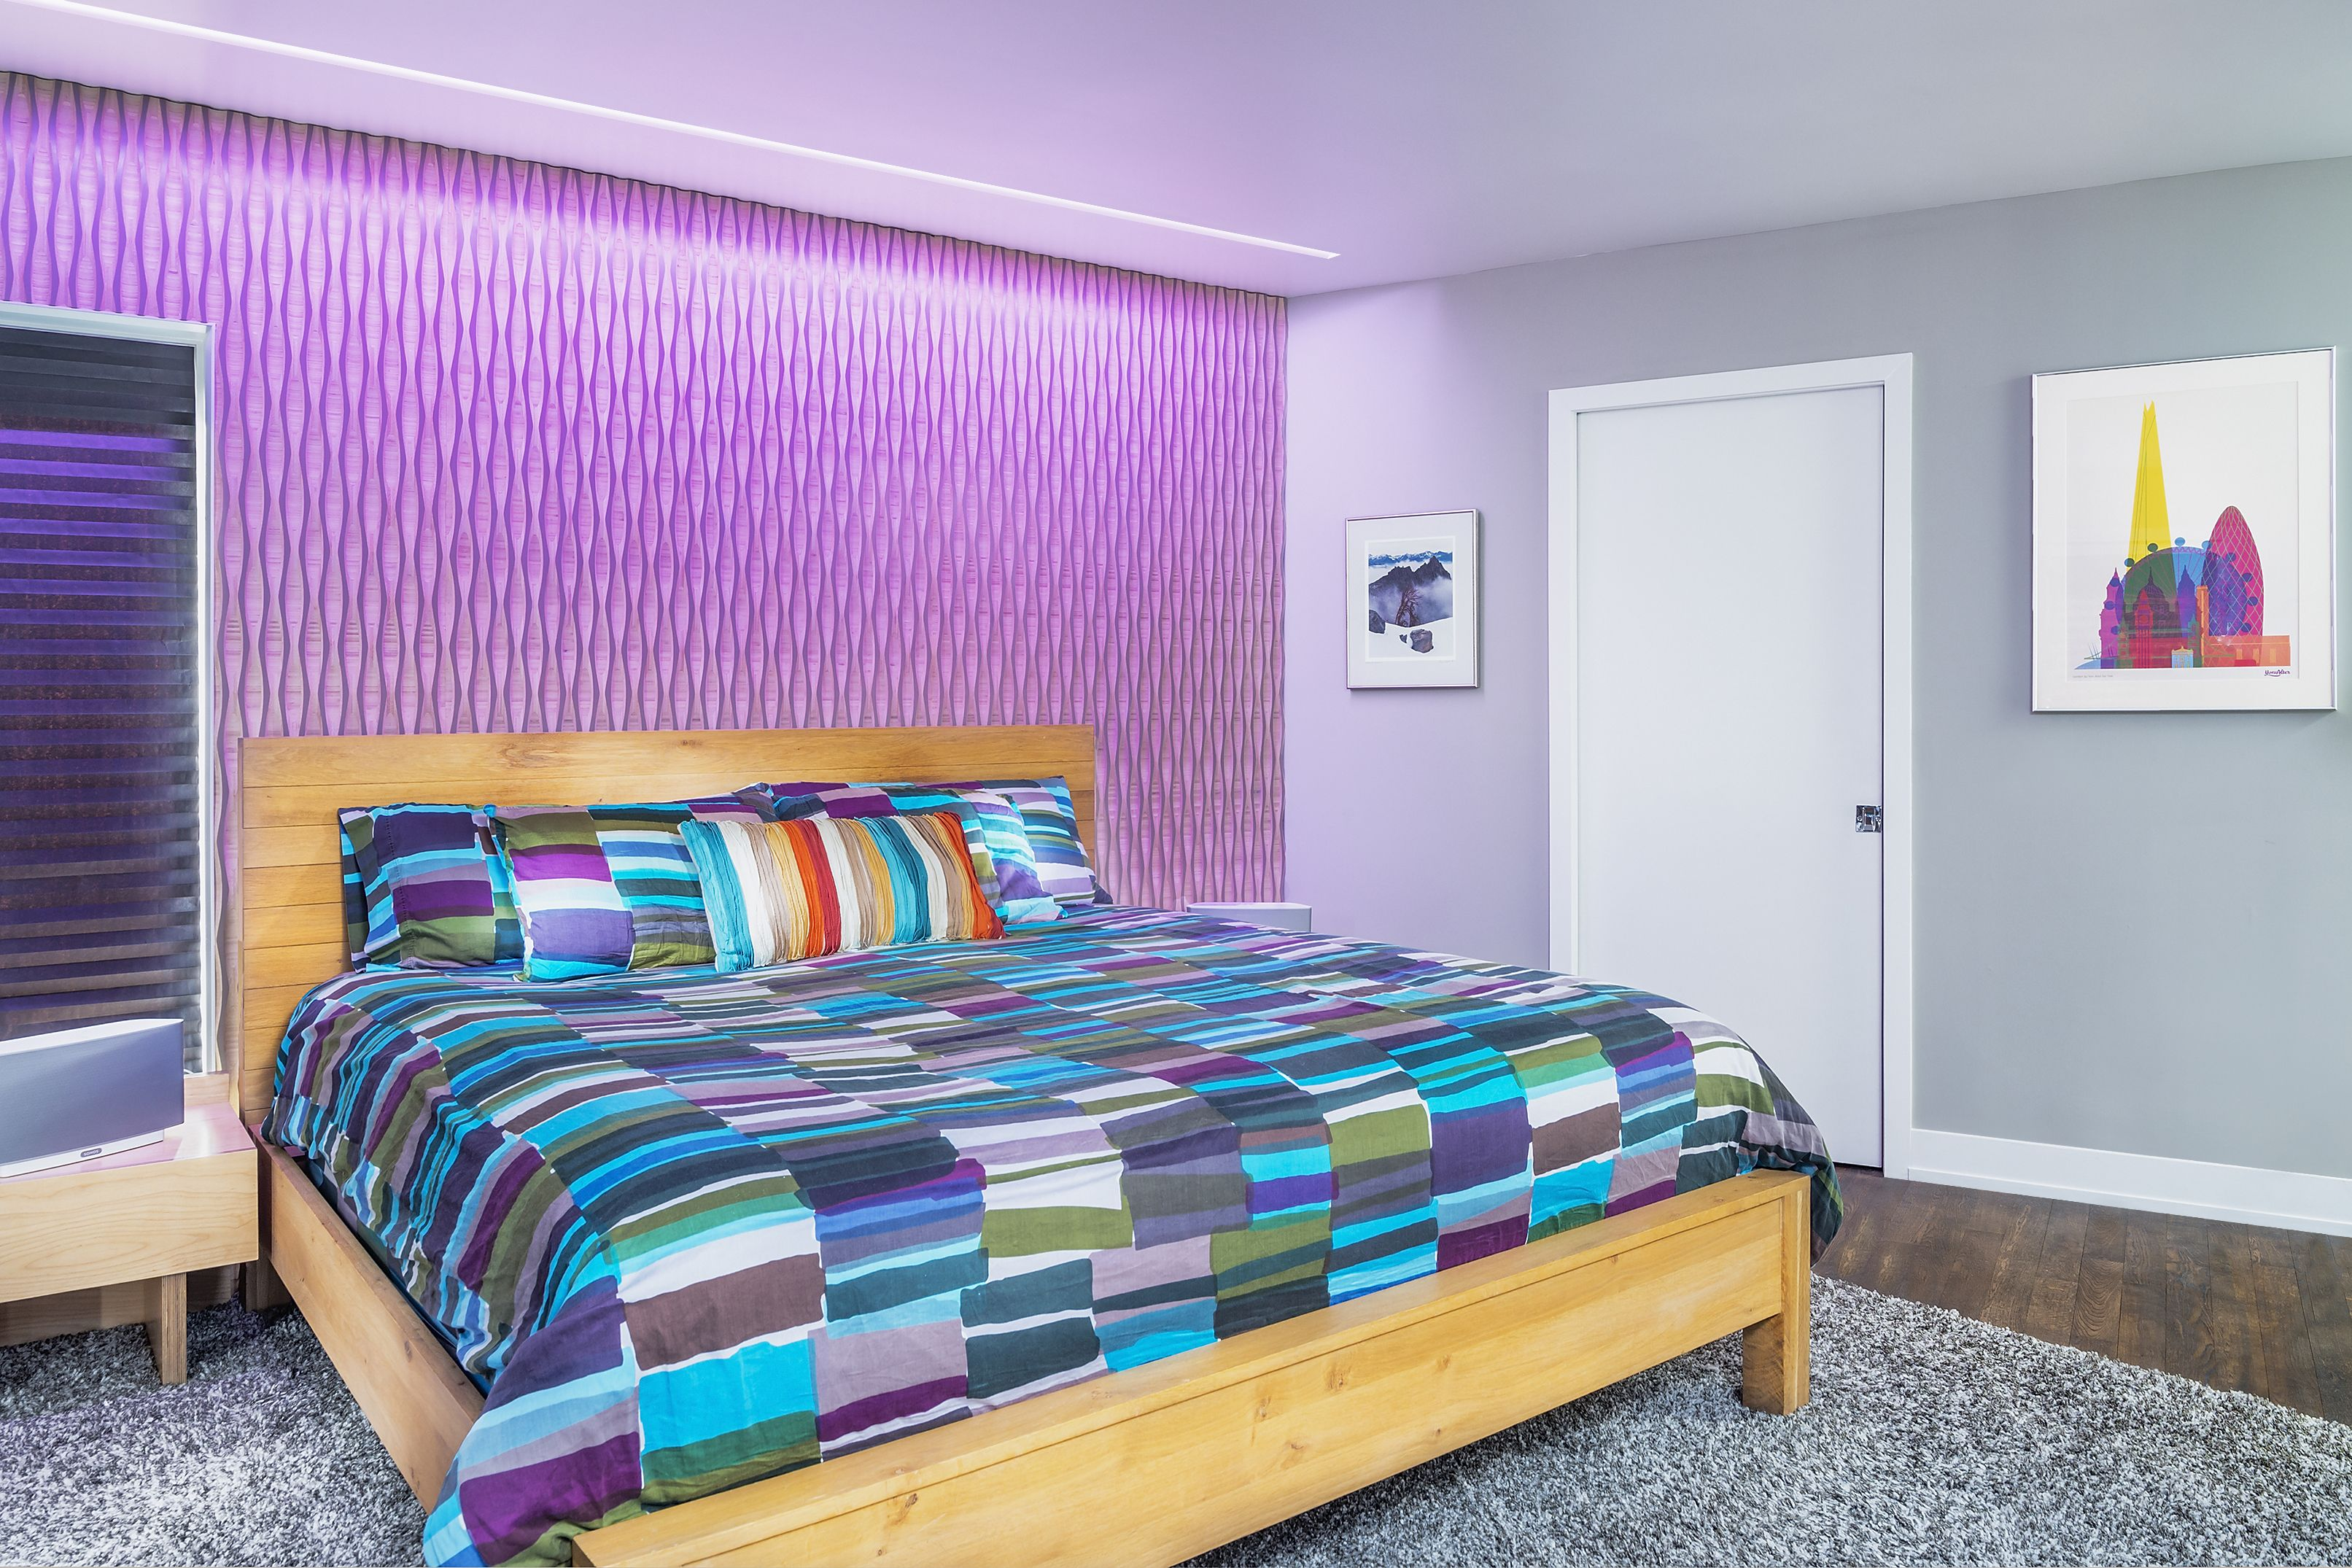 Reveal wall wash led lighting for bedrooms by pure lighting